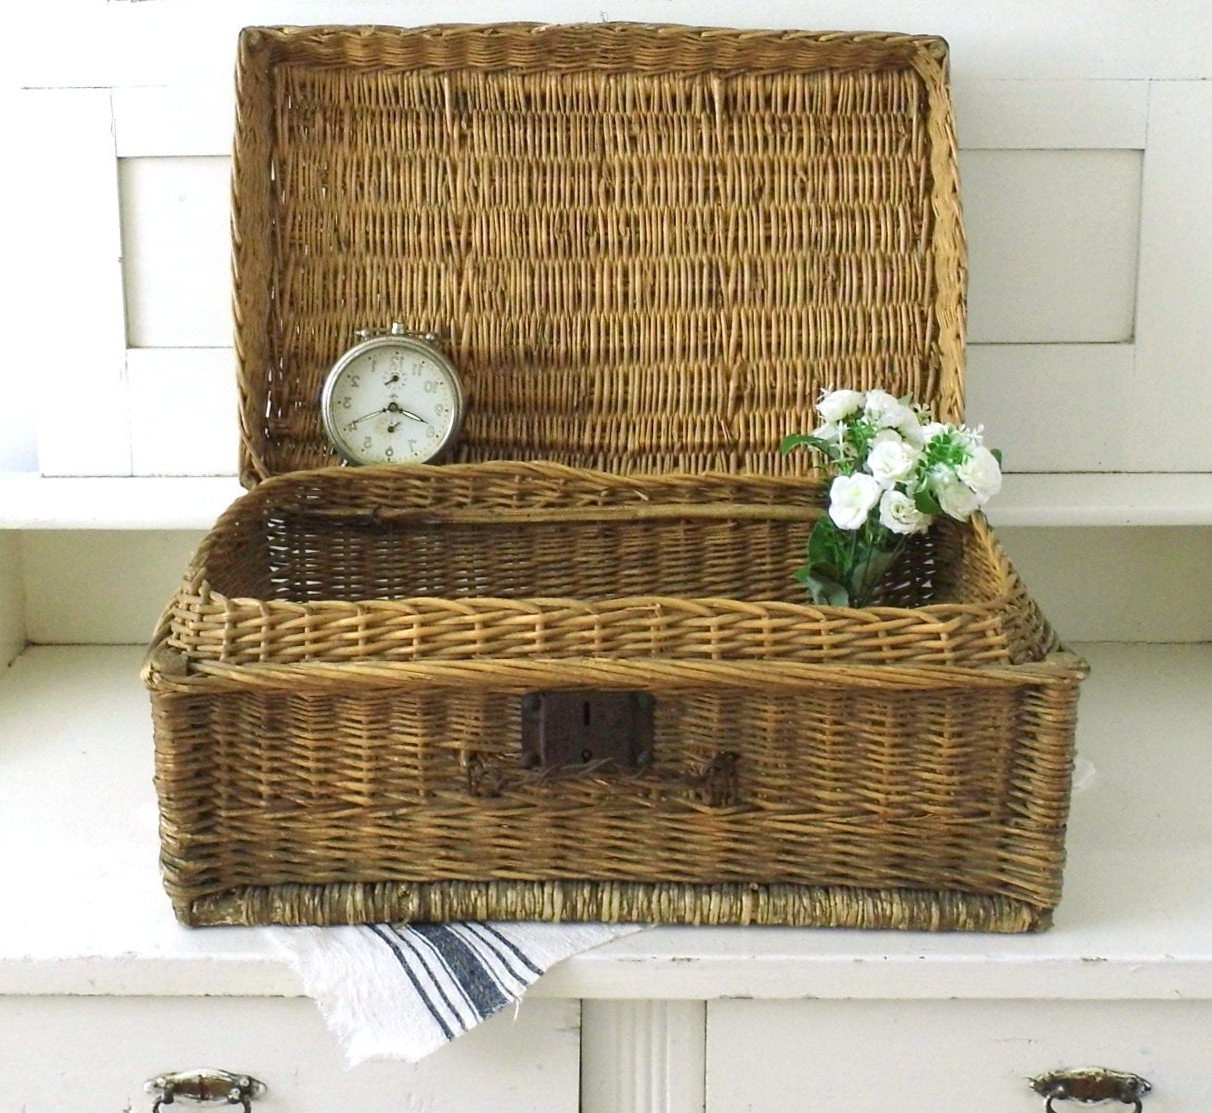 Antique Wicker Woven Suitcase Rustic Travel Luggage Wedding Display Case Laundry Blanket Storage Basket Small Coffee Table Hamper Farmhouse With Most Current Rustic Coffee Tables With Wicker Storage Baskets (View 12 of 20)